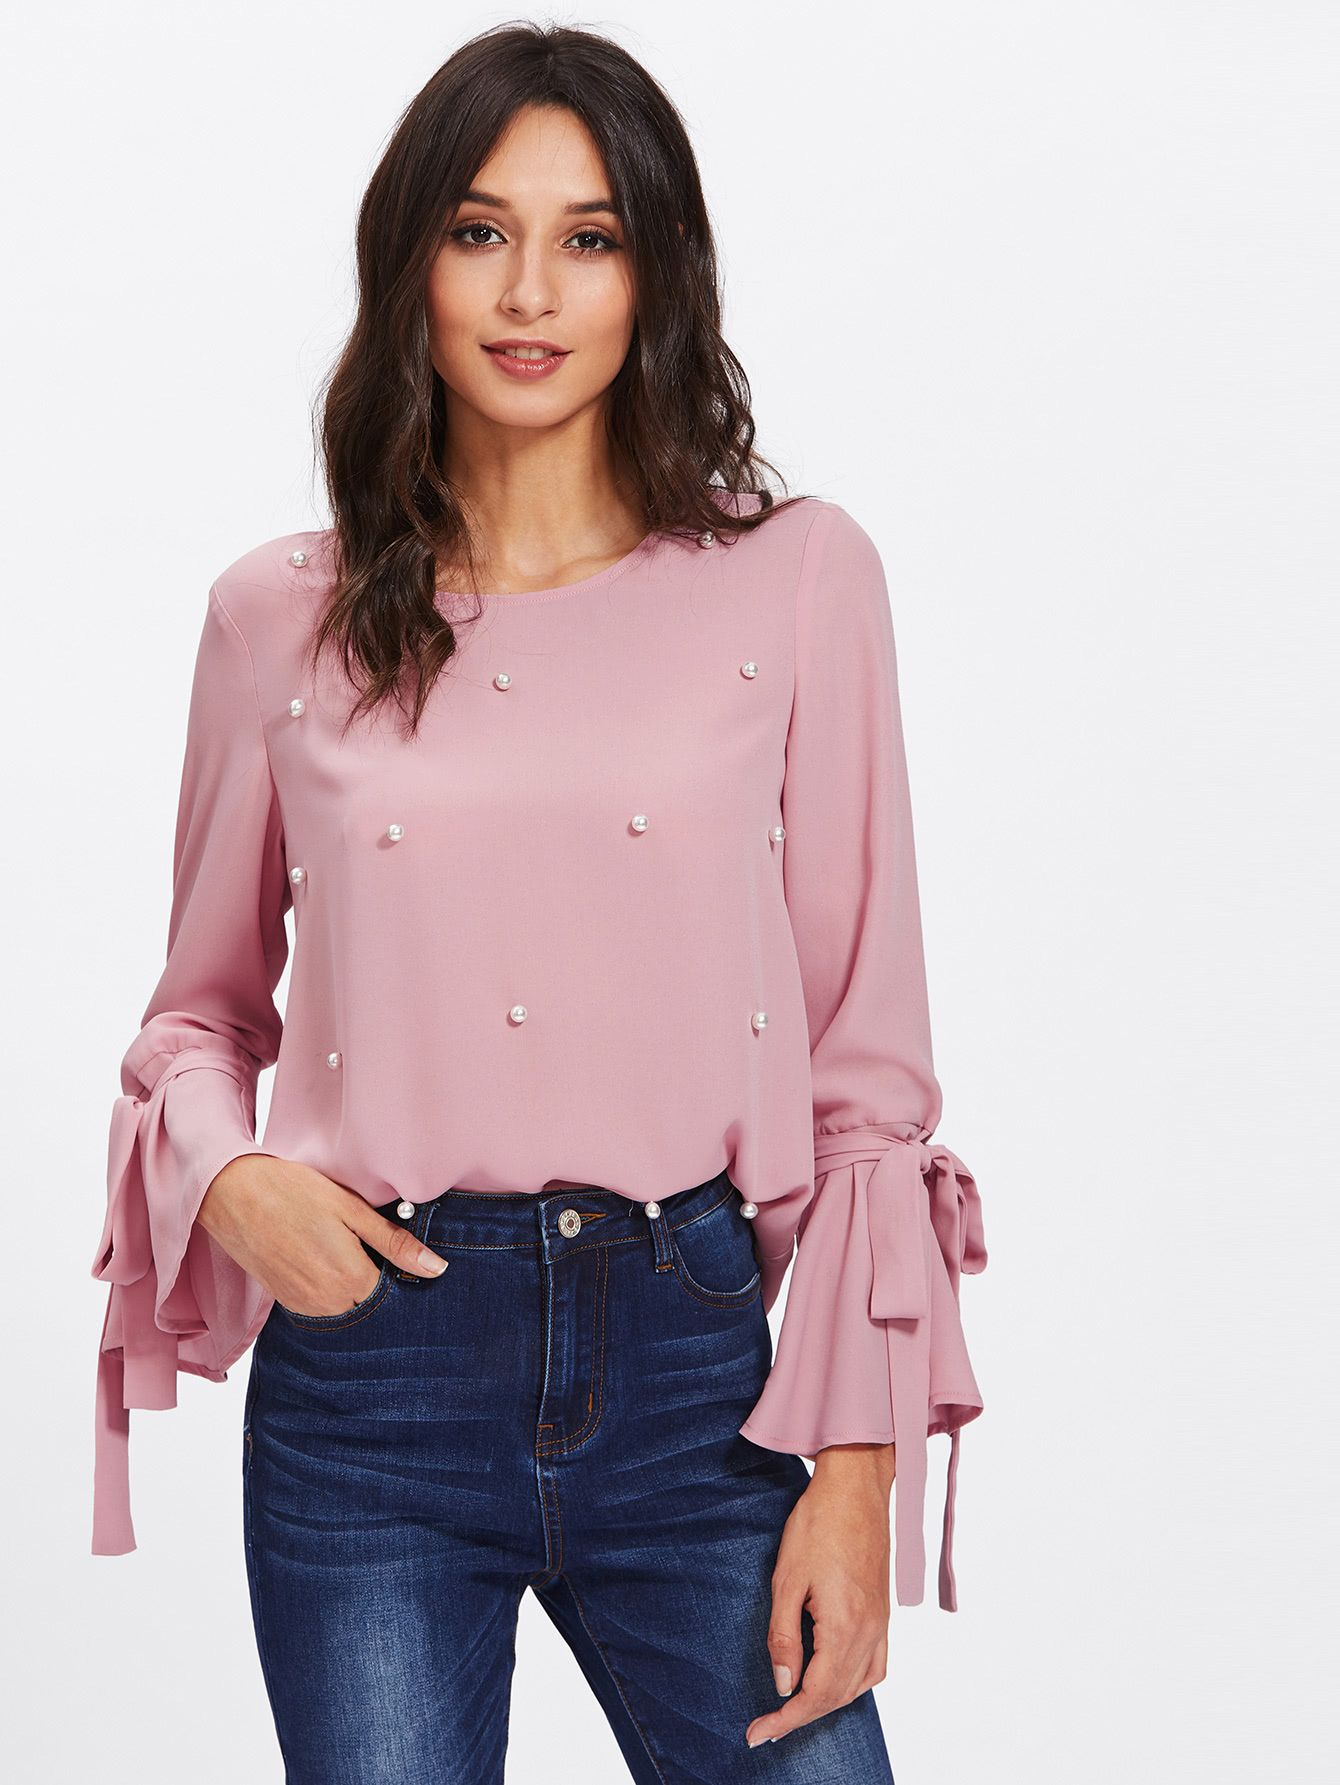 a99a6772d9933c Shop Pearl Embellished Bow Tied Bell Cuff Blouse online. SheIn offers Pearl  Embellished Bow Tied Bell Cuff Blouse & more to fit your fashionable needs.